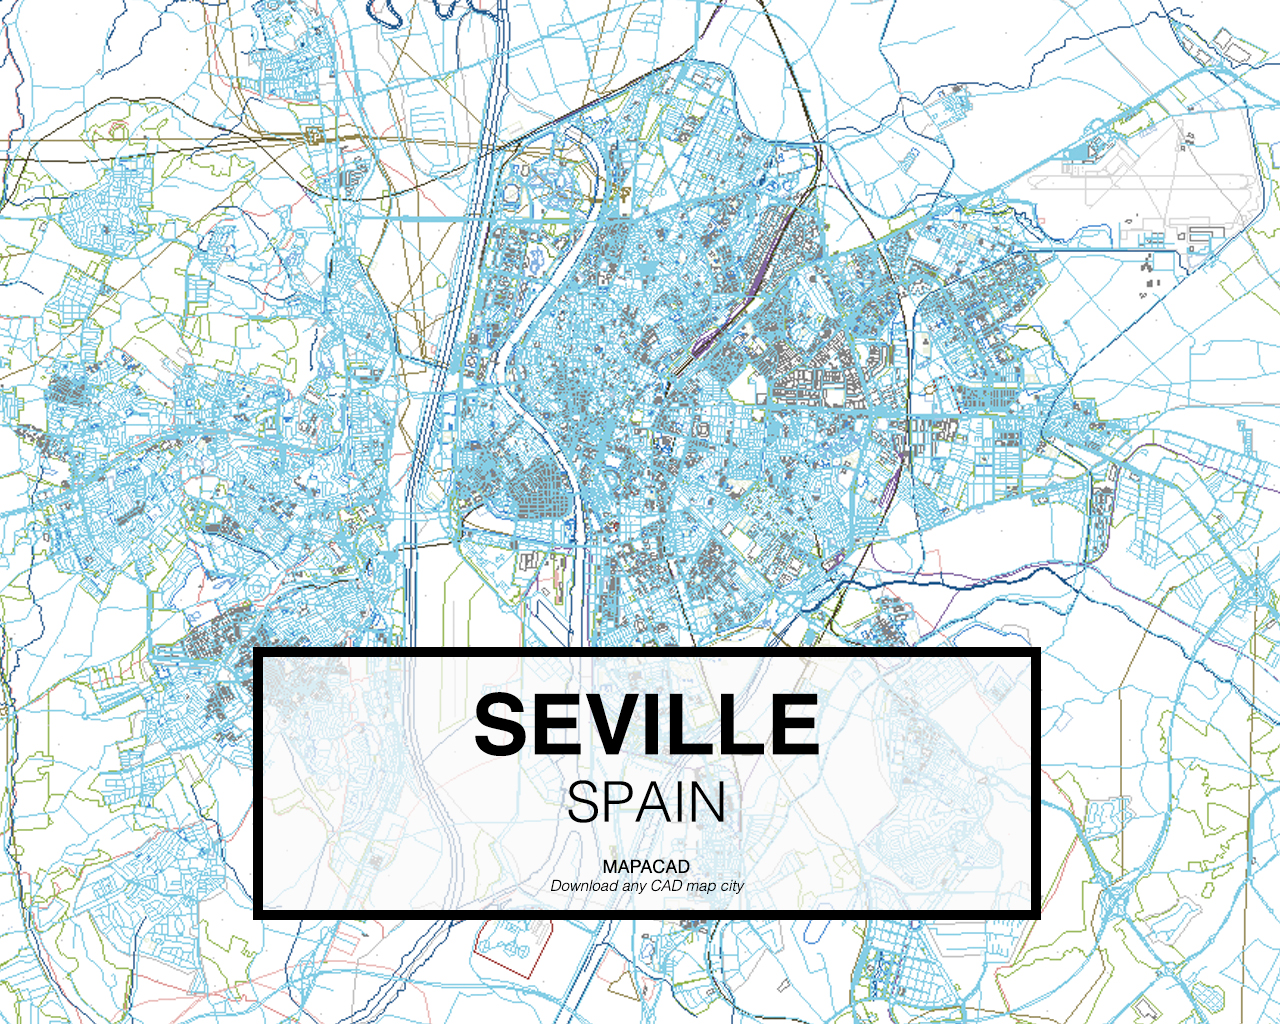 Download seville dwg mapacad seville spain 01 mapacad download map cad dwg gumiabroncs Image collections